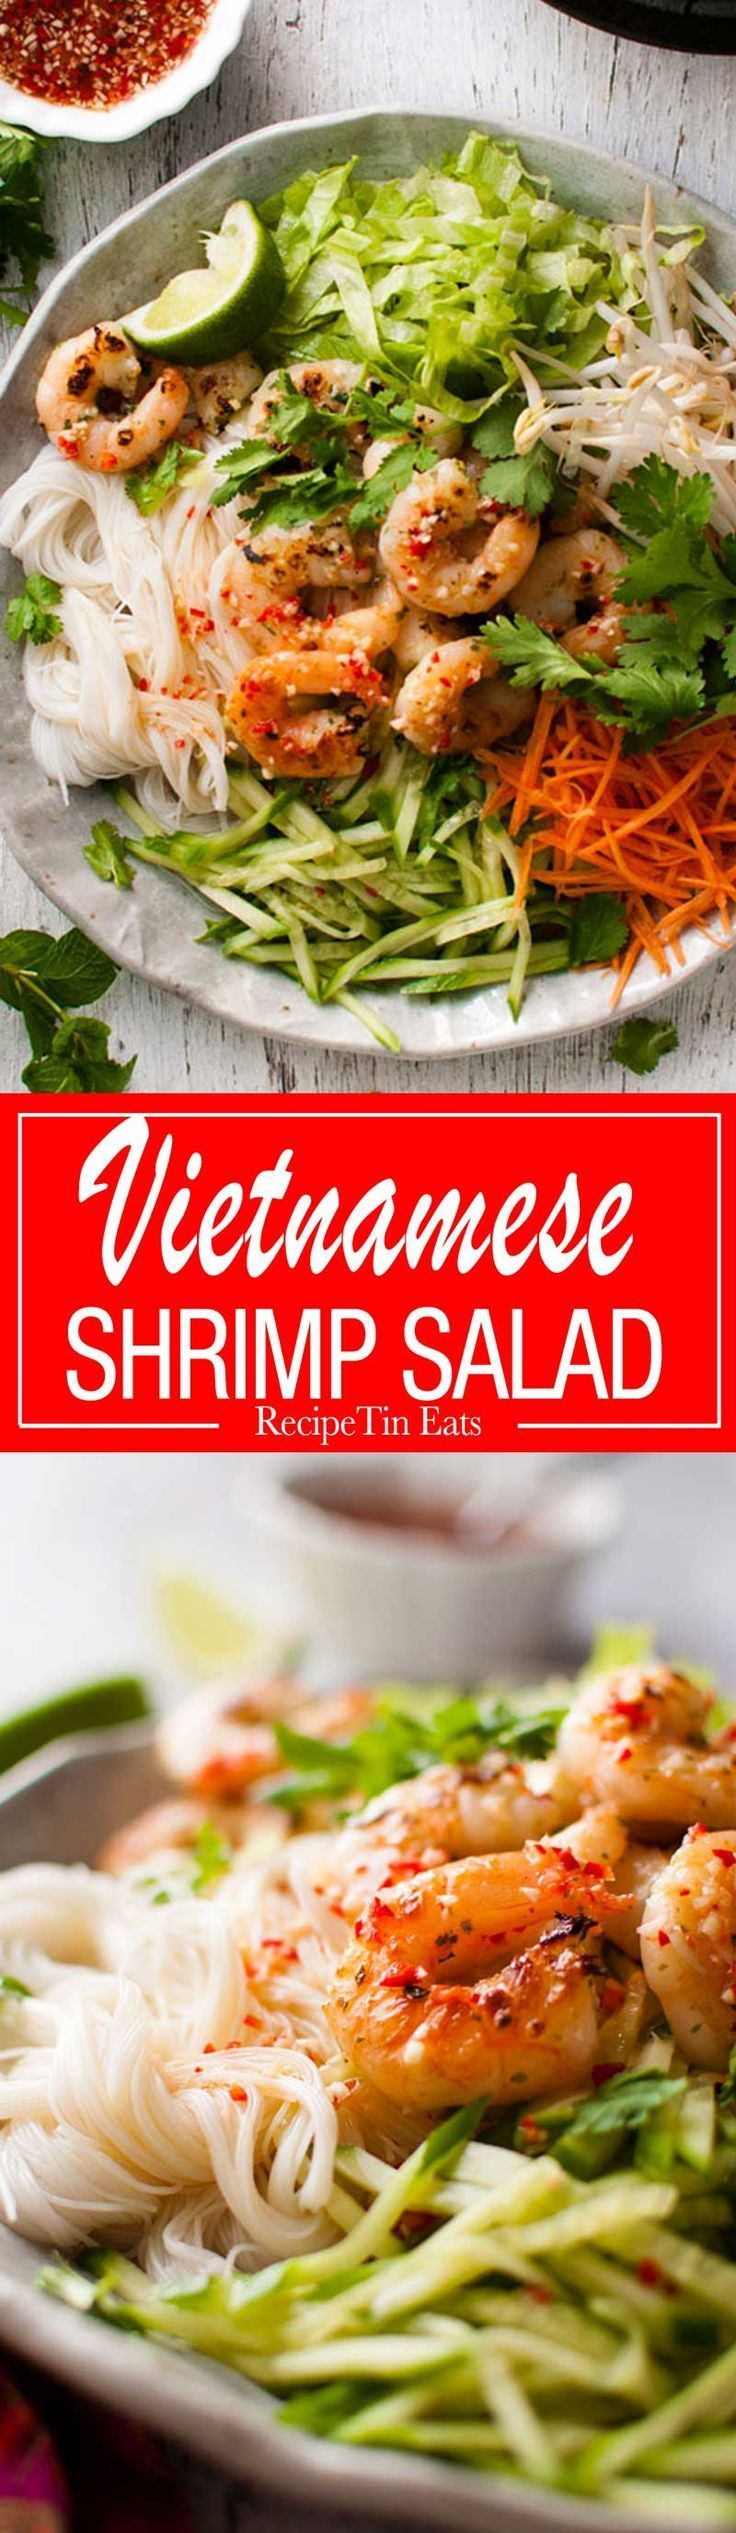 "Vietnamese Shrimp Noodle Salad - lovely bright, zesty flavours, incredibly healthy, fast to make and an awesome dressing. <a href="""" rel=""nofollow"" target=""_blank"">www.recipetineats...</a>"